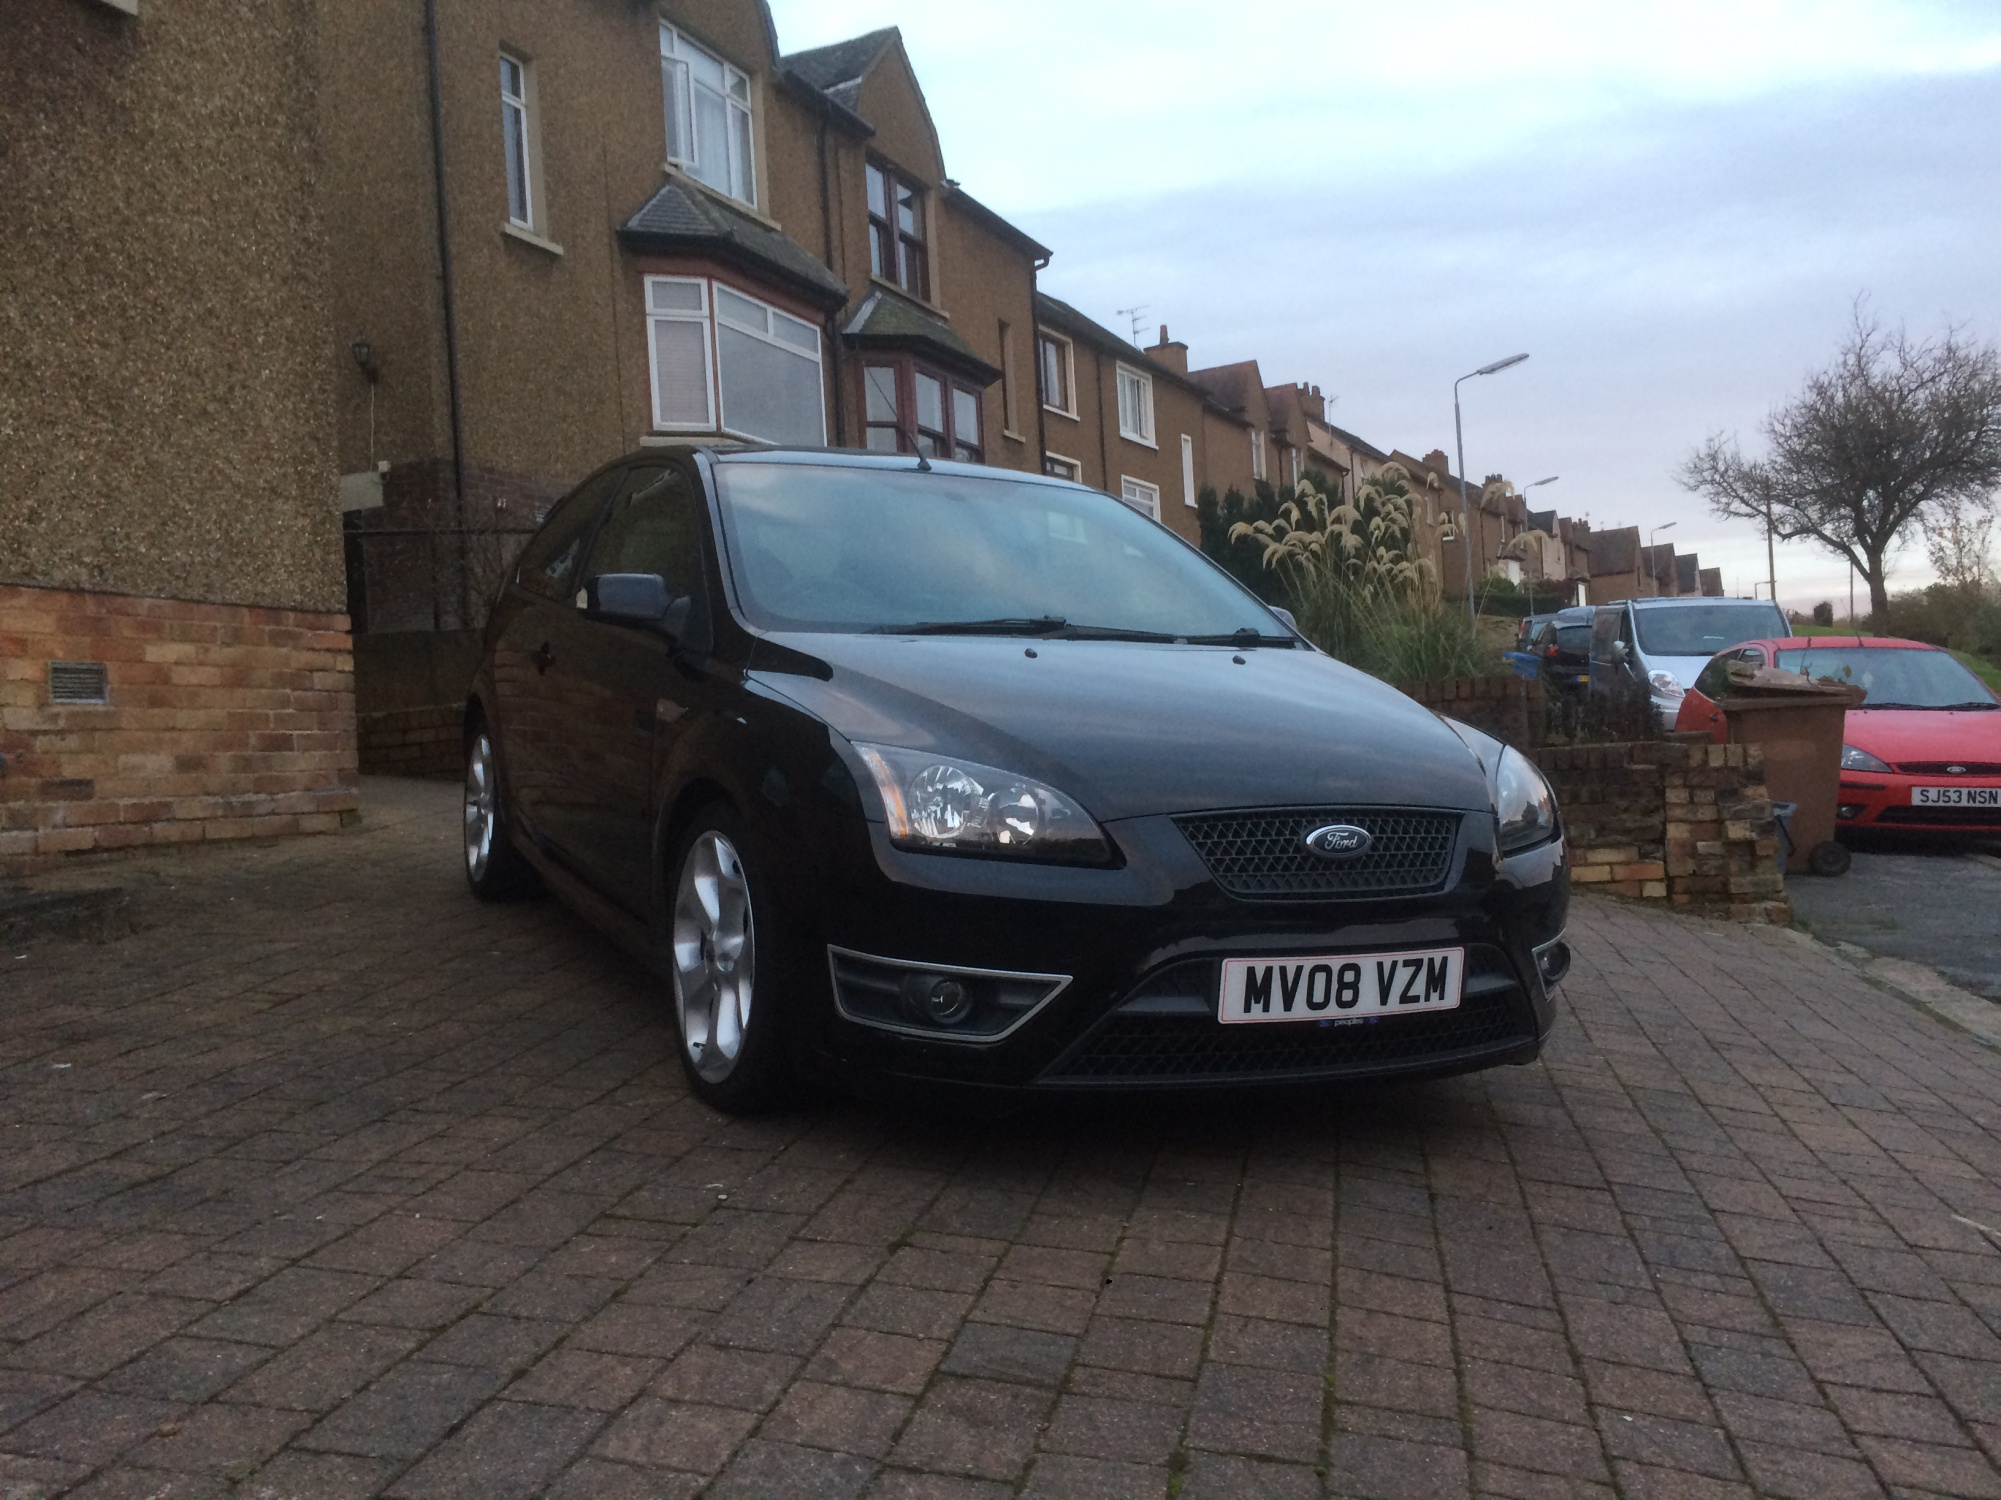 Ford focus st for sale panther black img 1282 jpg